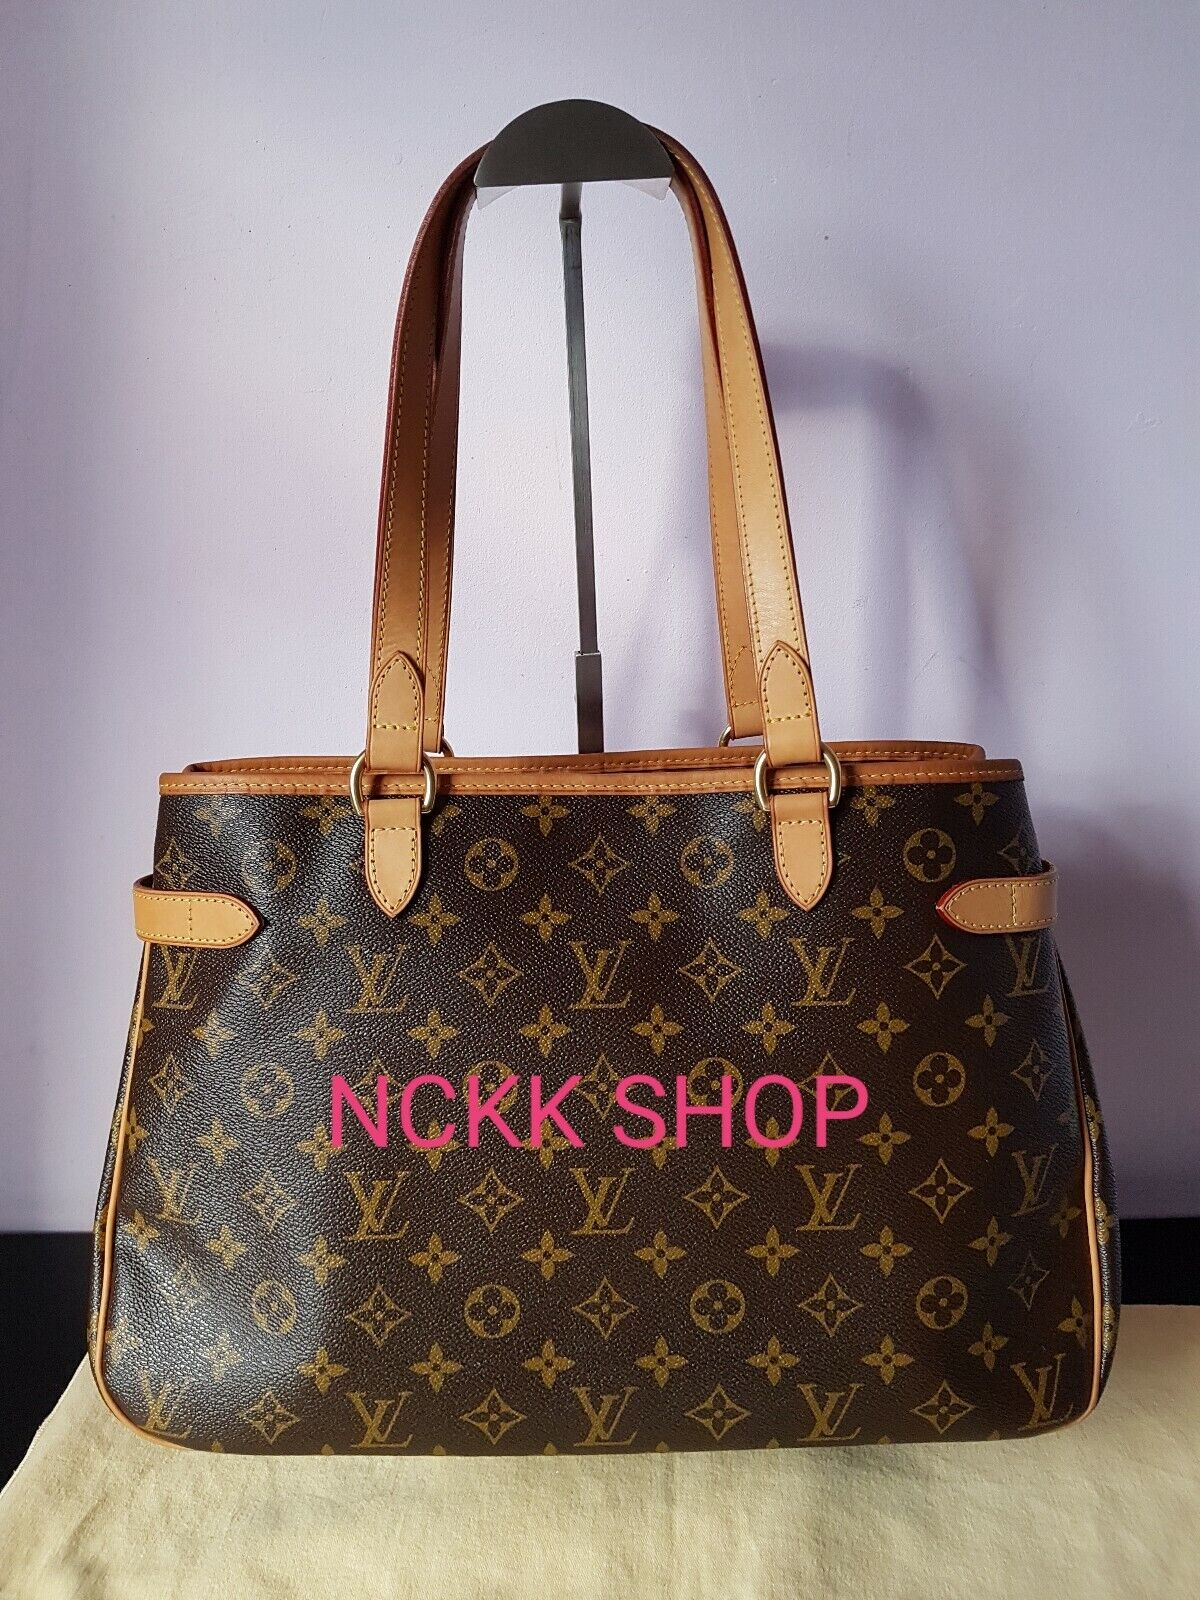 Louis Vuitton Monogram Canvas Batignolles Horizontal Hand Bag m51154 - 825.09,Kaufpreis 825,09,datum 01.07.2020 22:12:38,Website